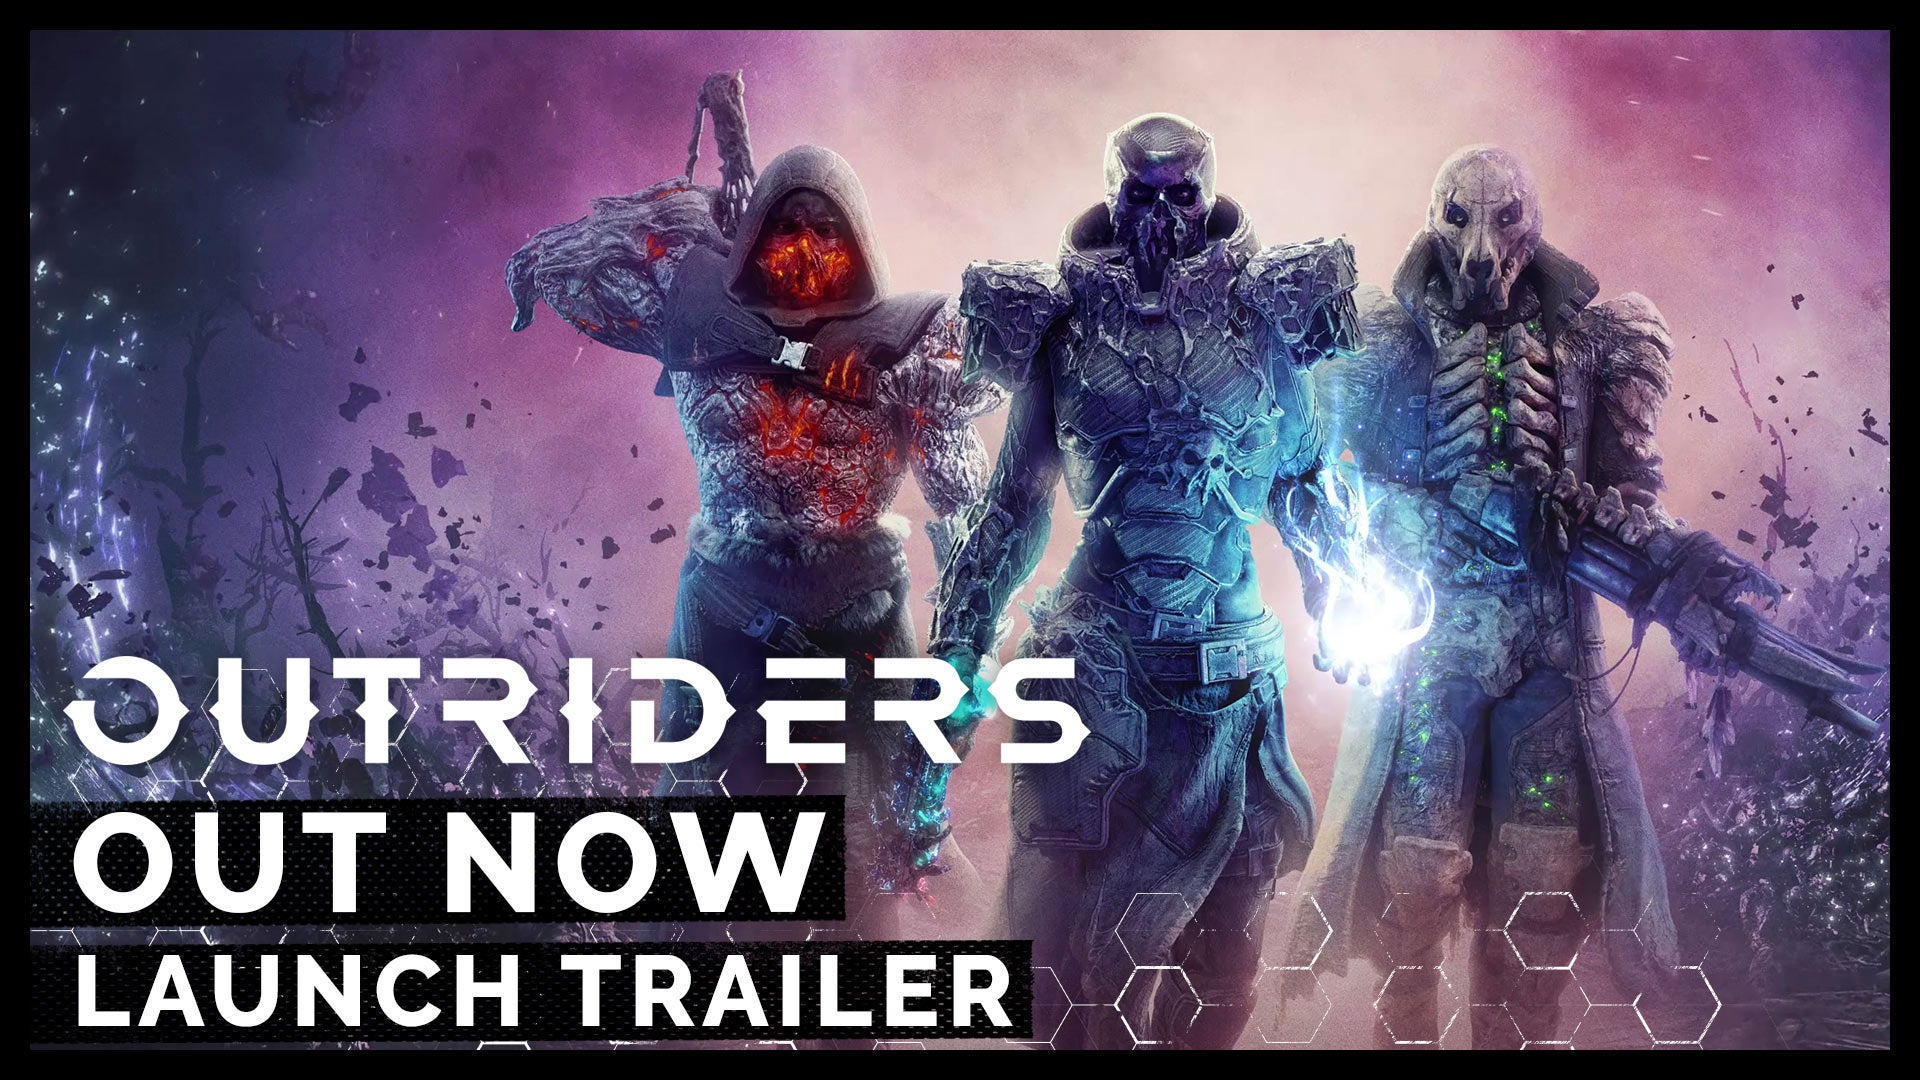 thumbnail for Outriders Launch Trailer